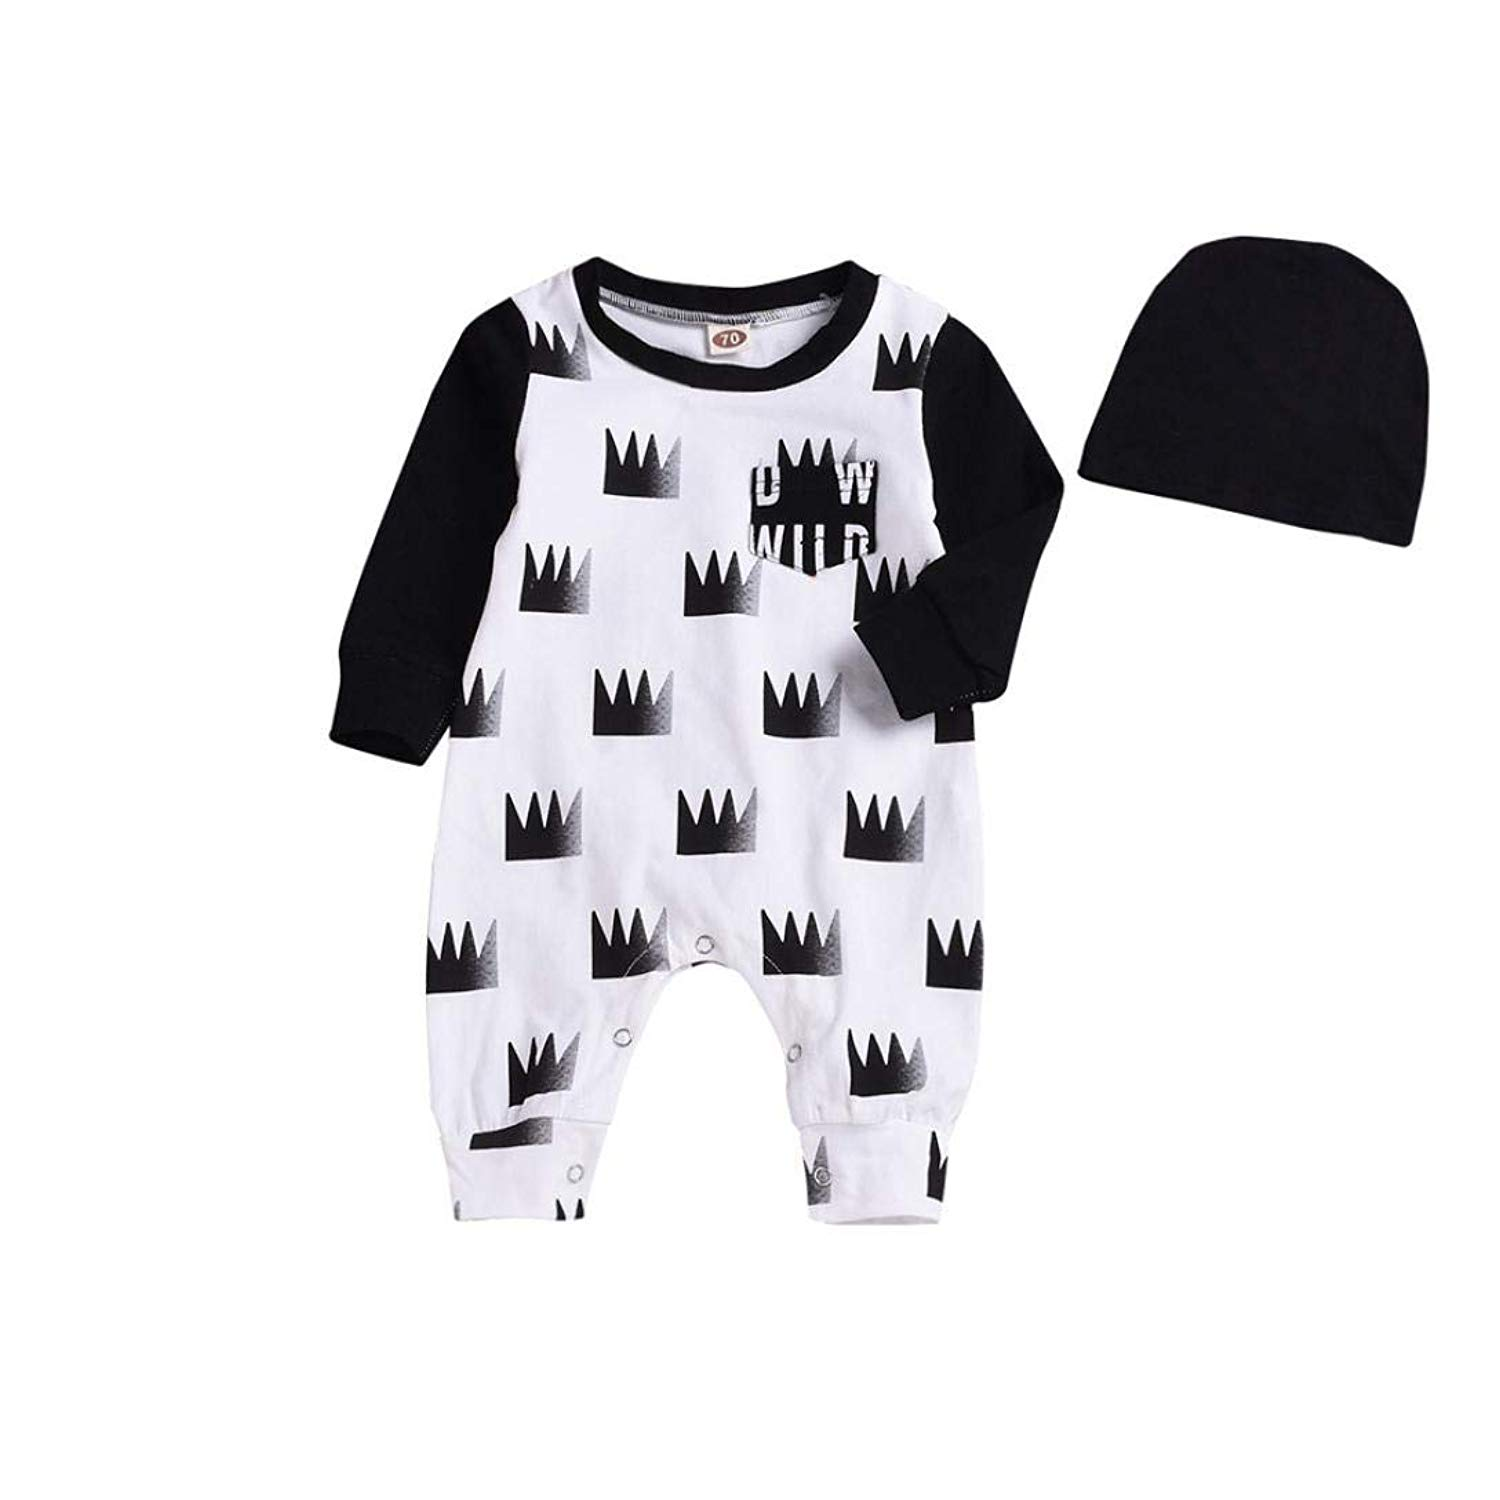 8fce05278908 Cheap Infant Boy Outfit